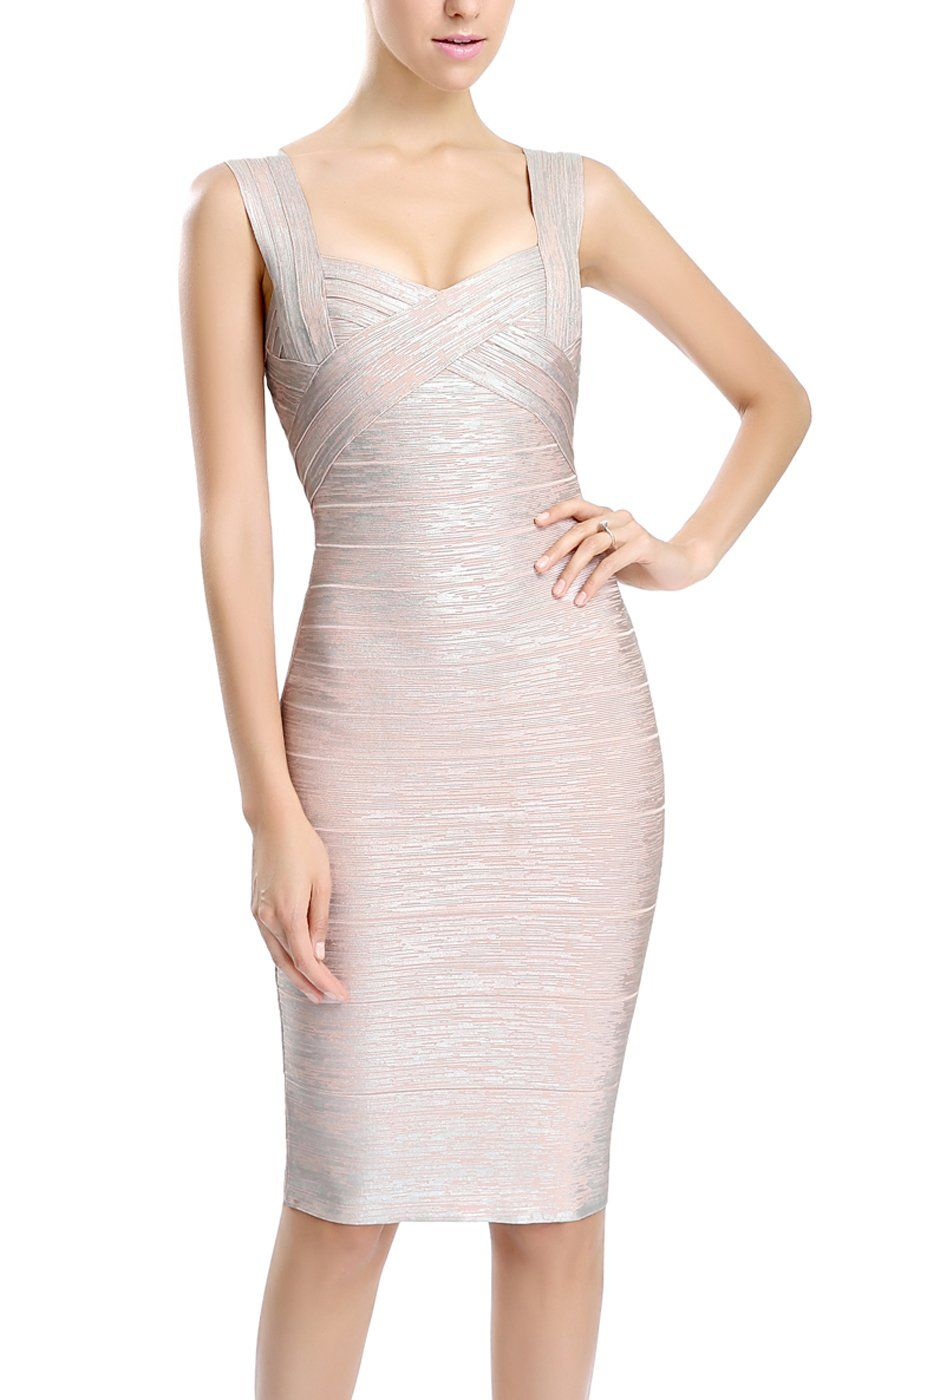 38cc848fc phistic Womens Crisscross Front Bandage Dress Blush S *** You can get more  details